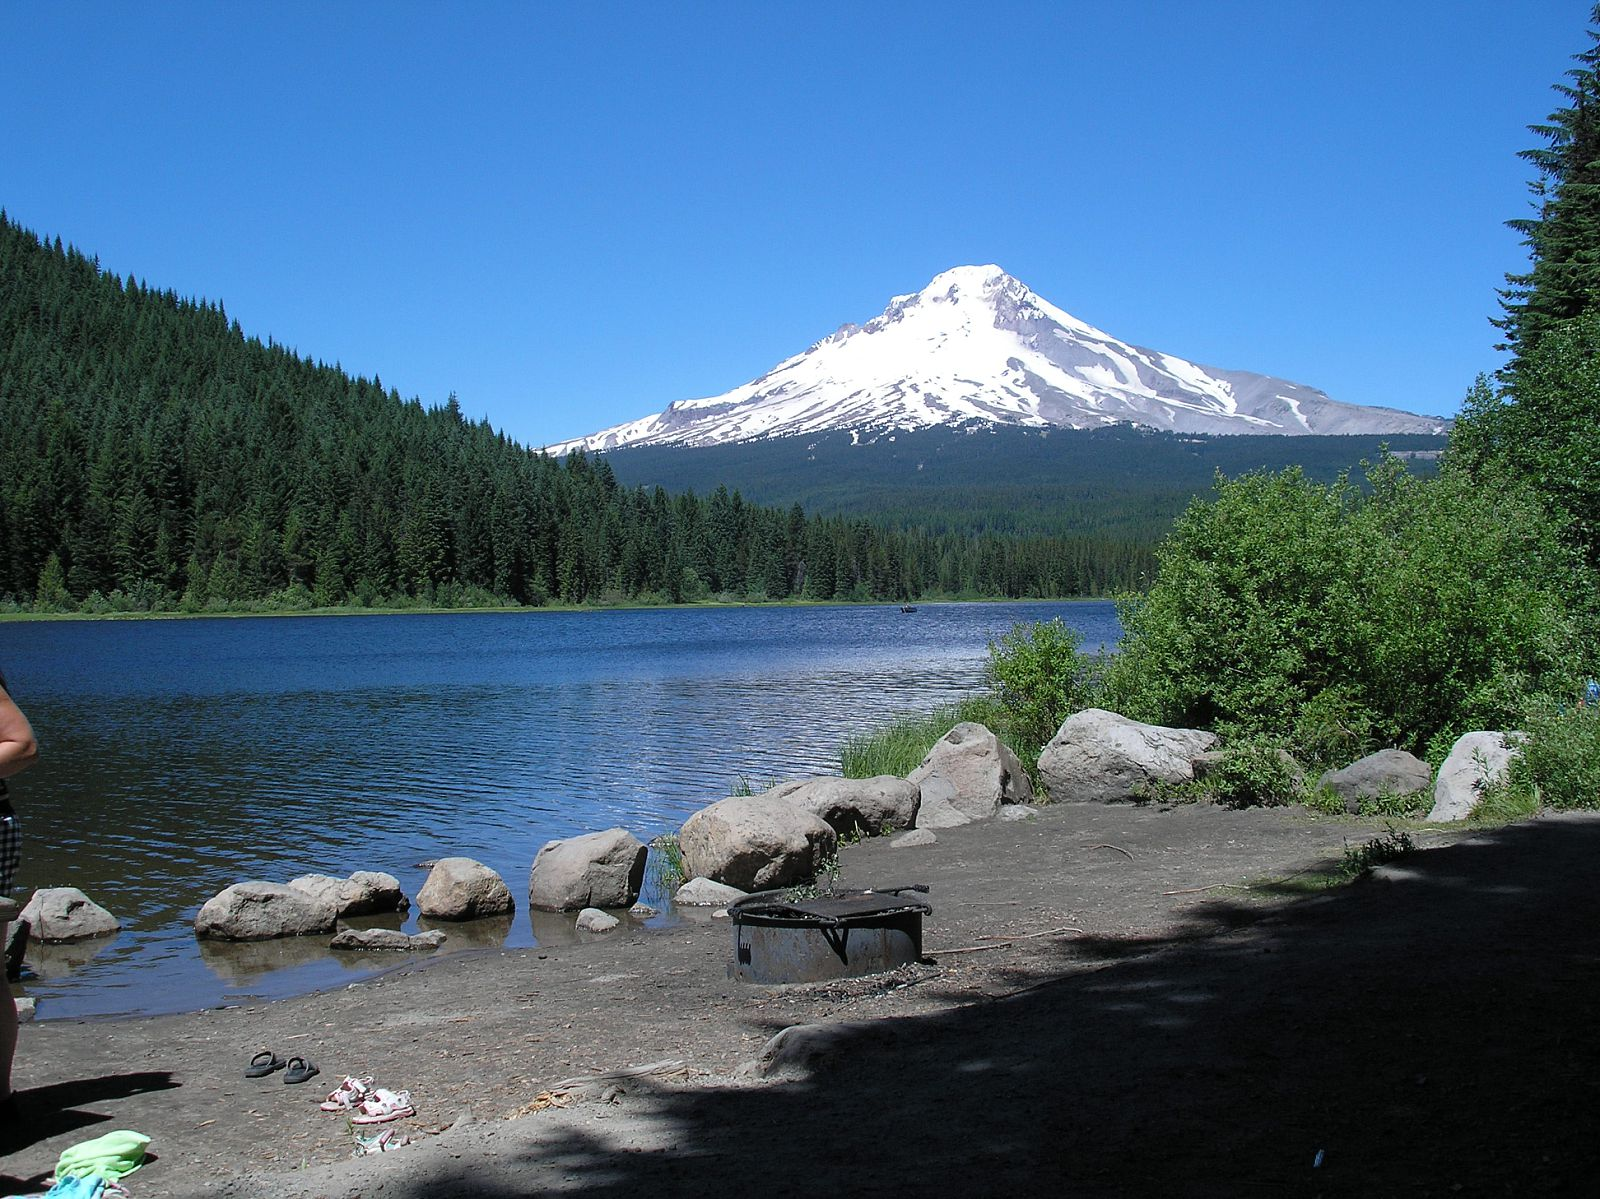 Just lu holy vacation batman for Barlow cabin trillium lake